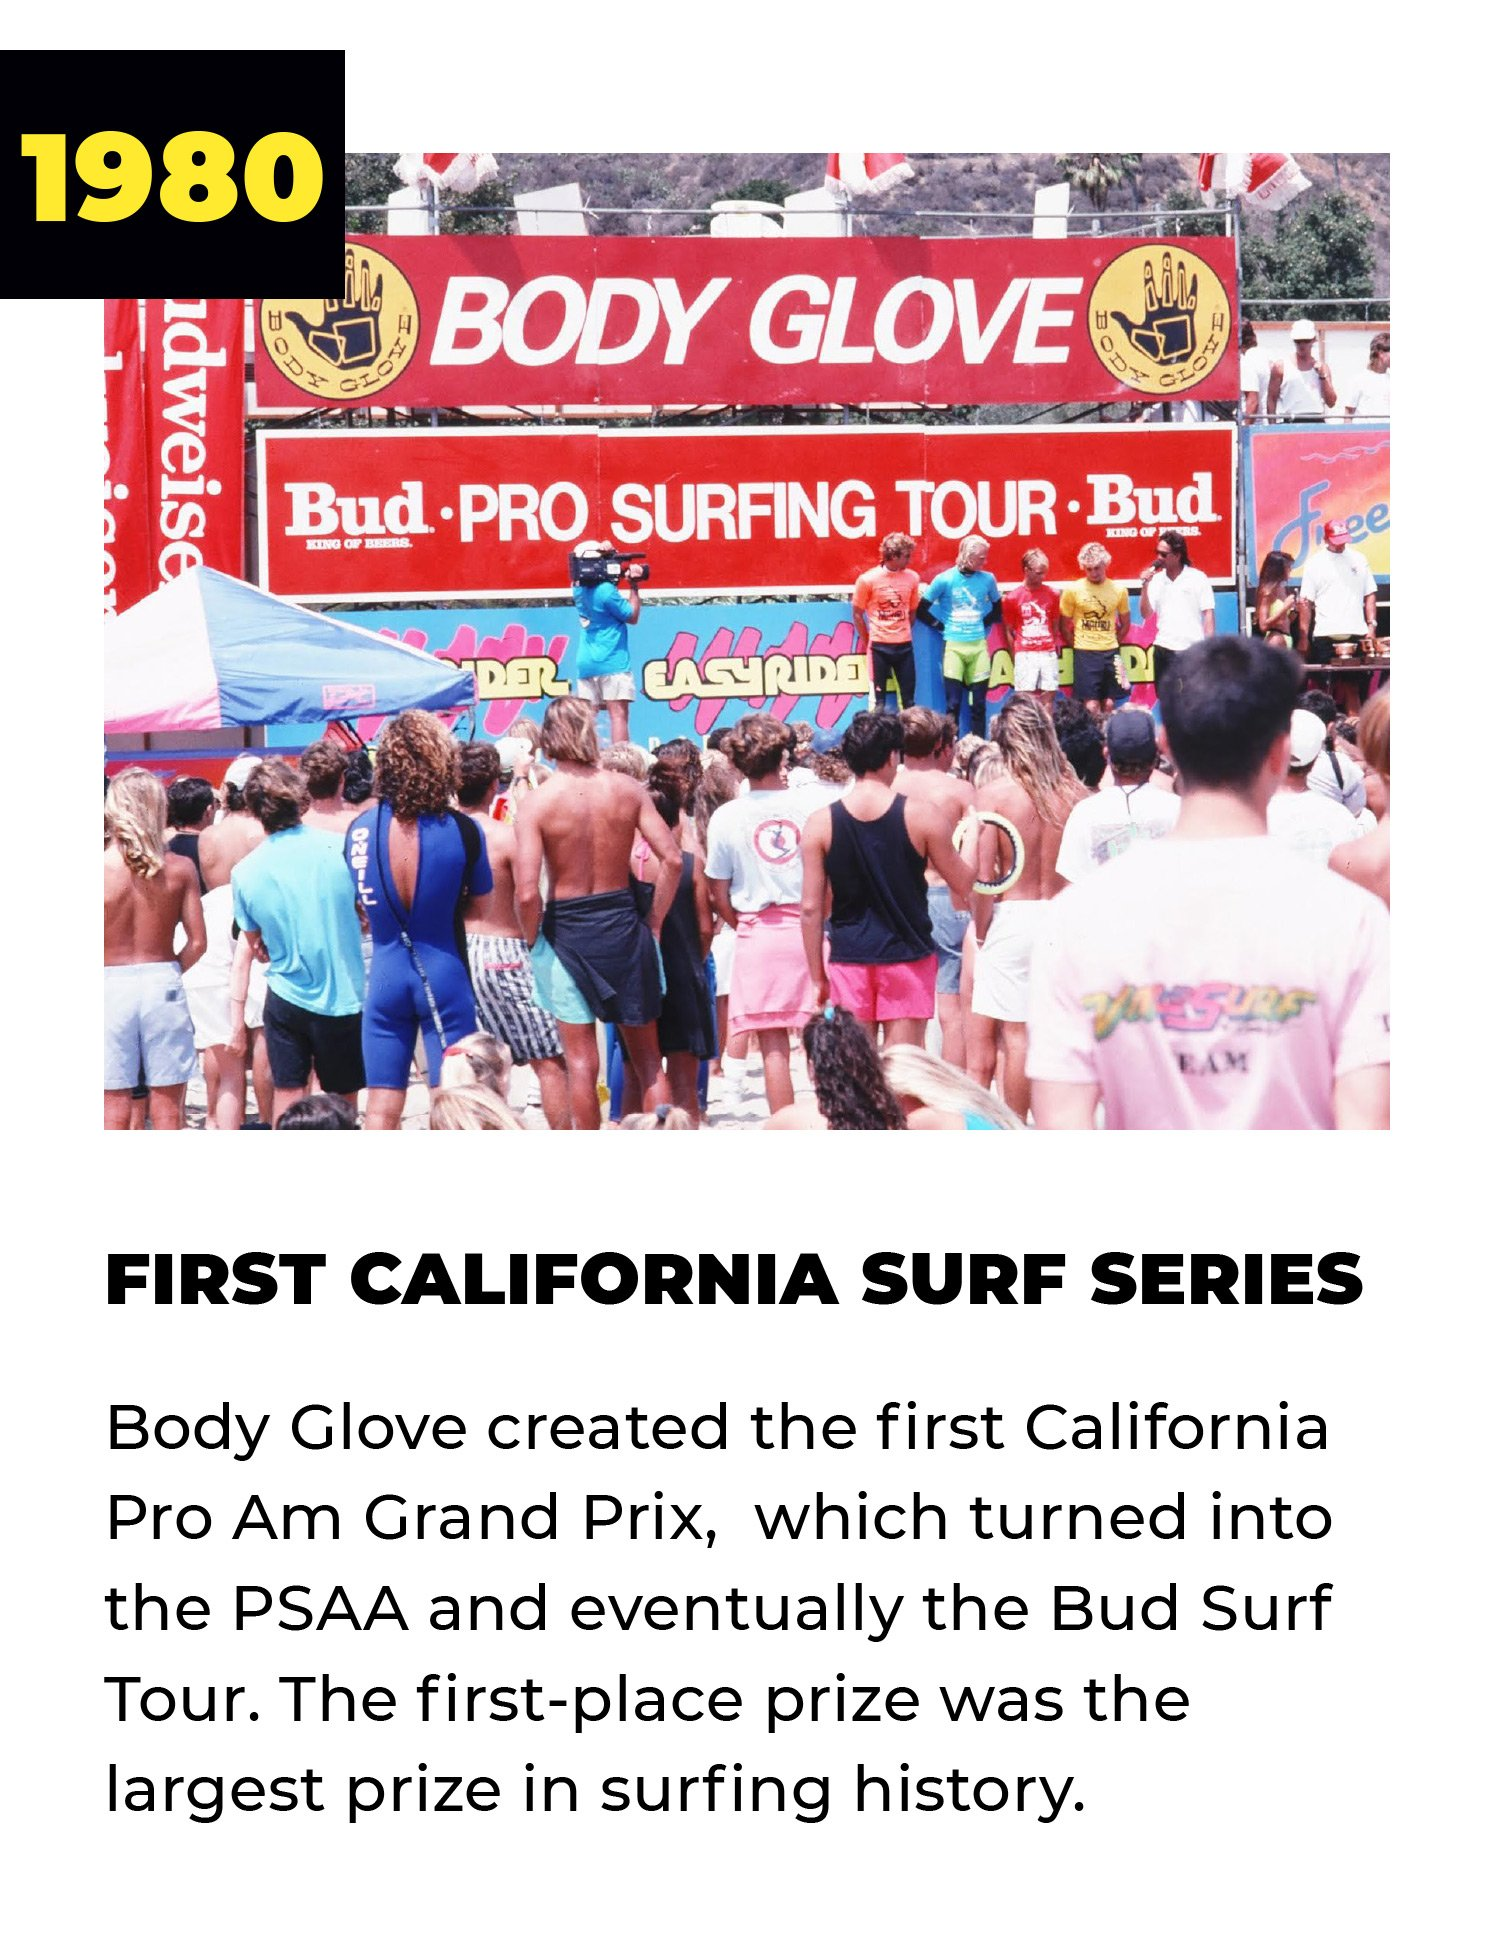 1980 | First California Surf Series | Body Glove created the first California Pro Am Grand Prix, which turned into the PSAA and eventually the Bud Surf Tour. The first-place price was the largest price in surfing history.